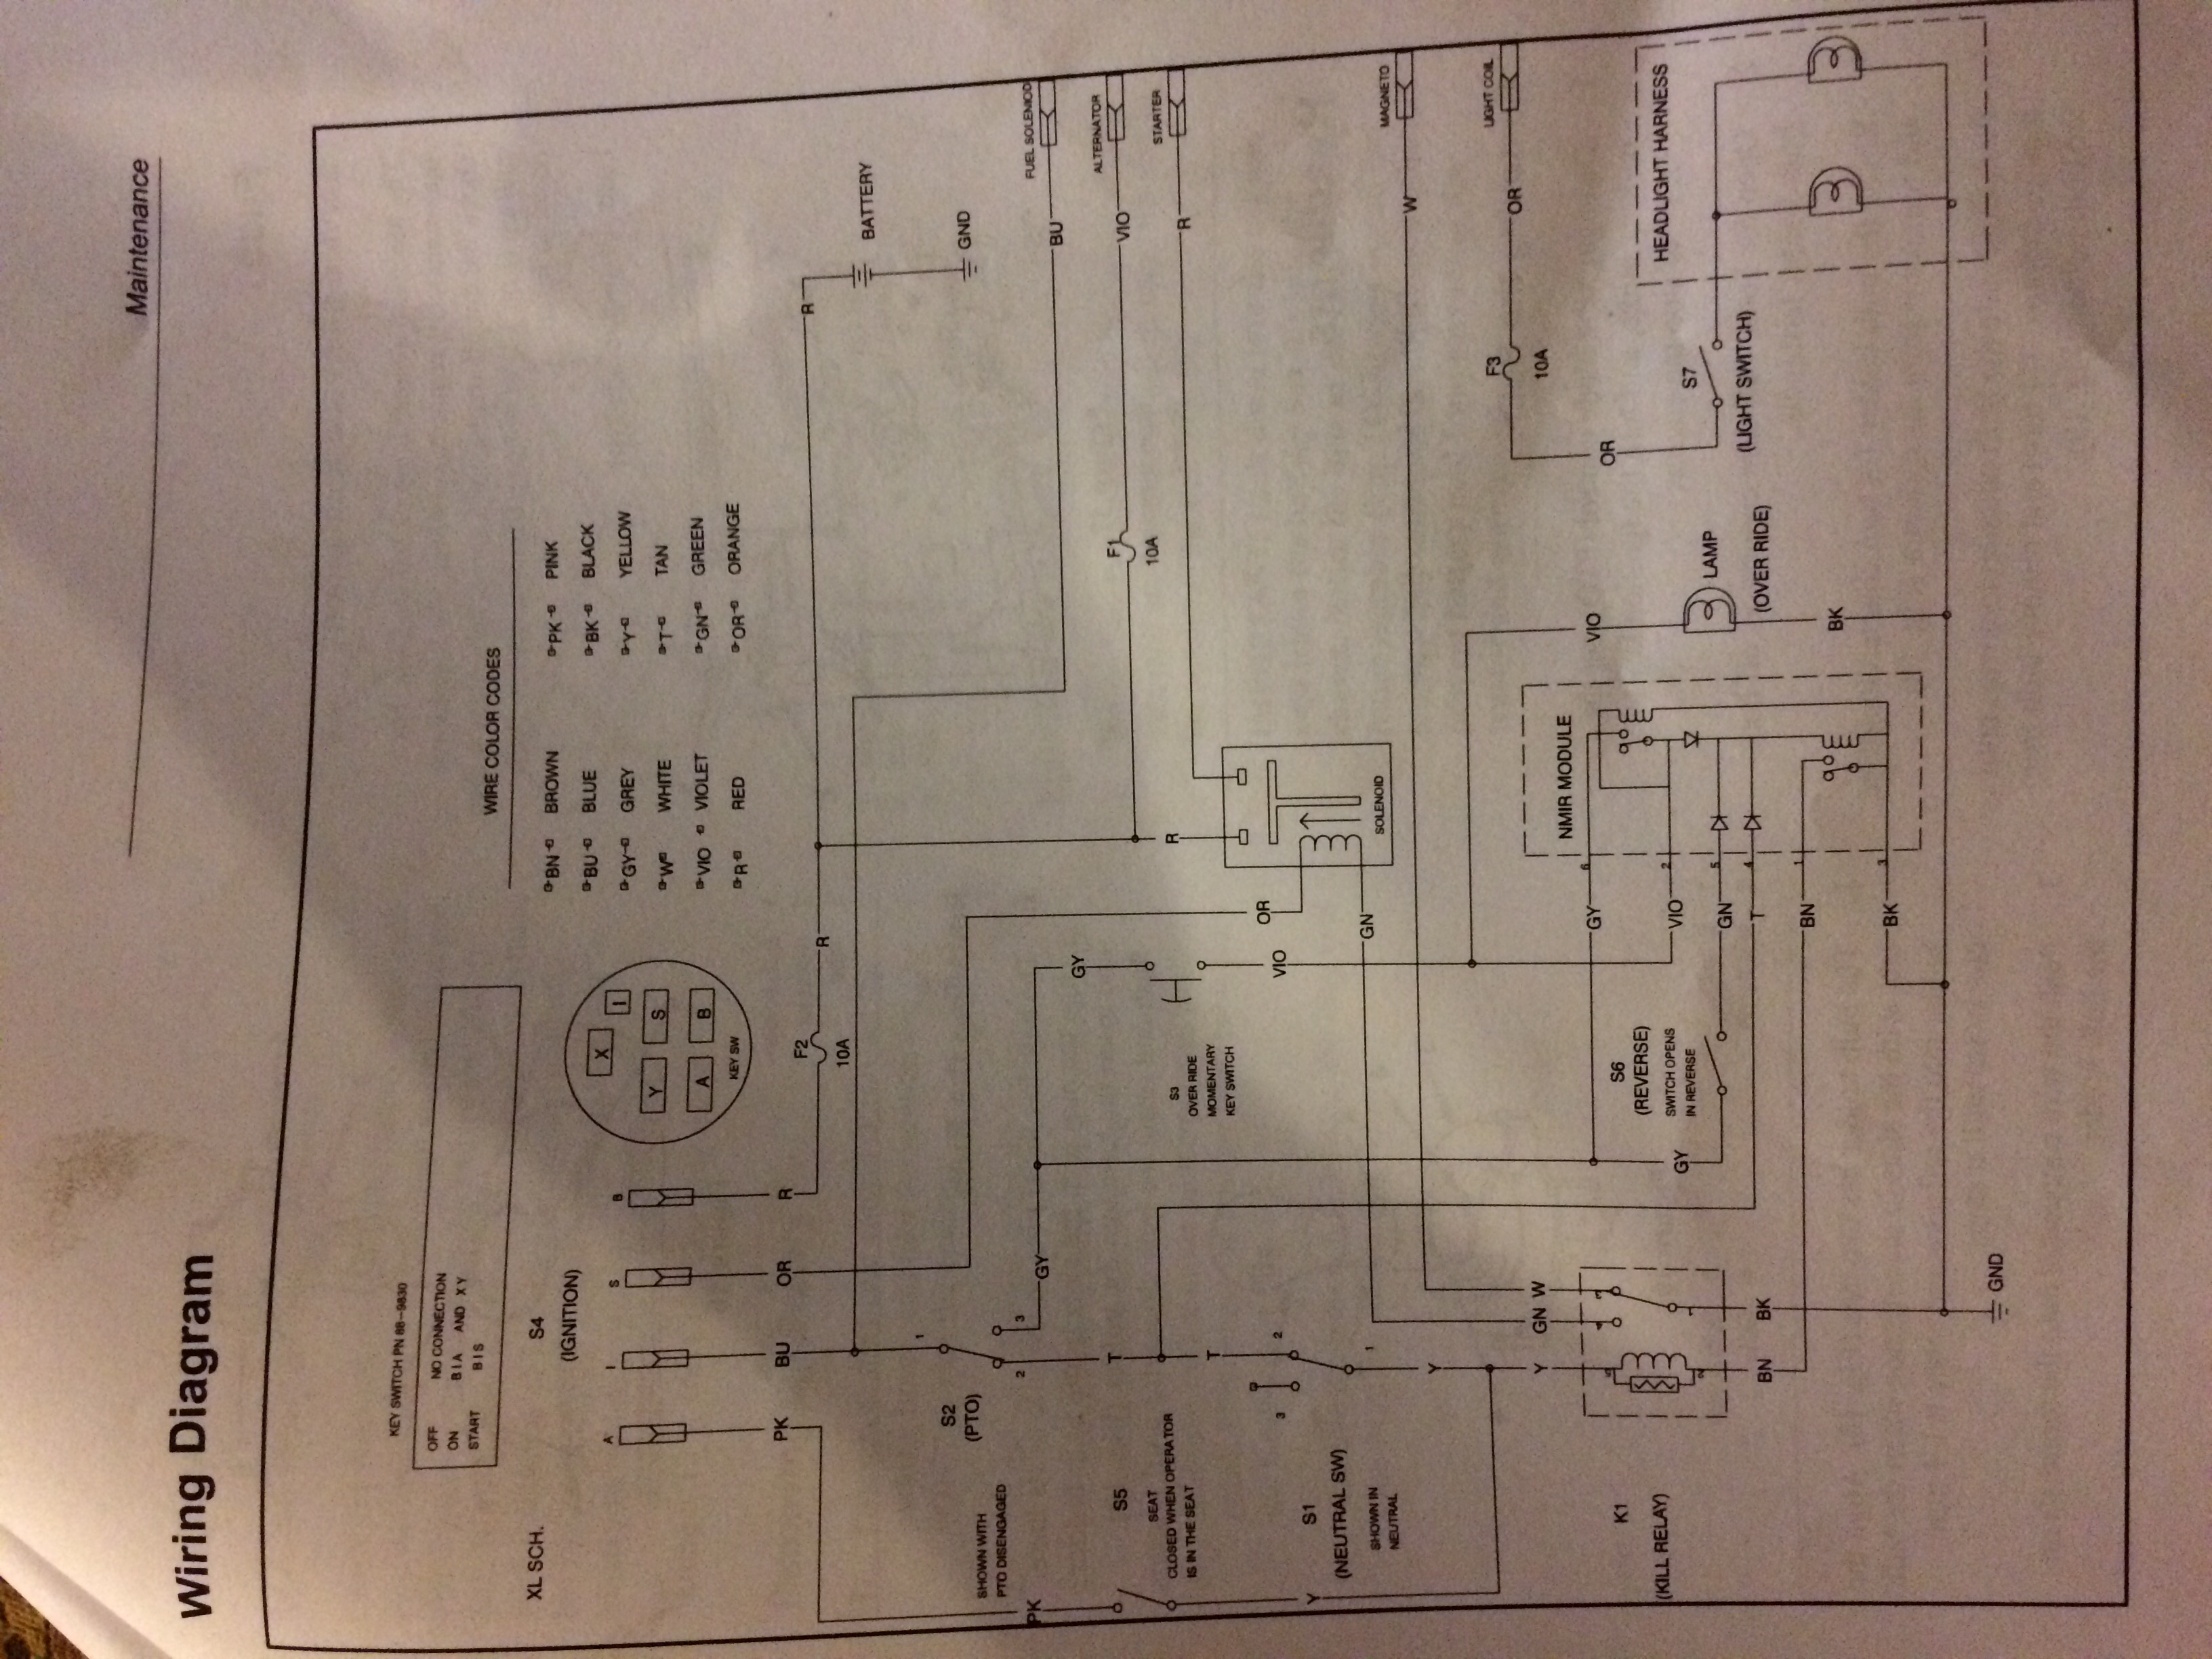 I was given a toro wheel horse 16-38hxl It doesn't run. There is a Toro Wheel Horse Wiring Diagram on